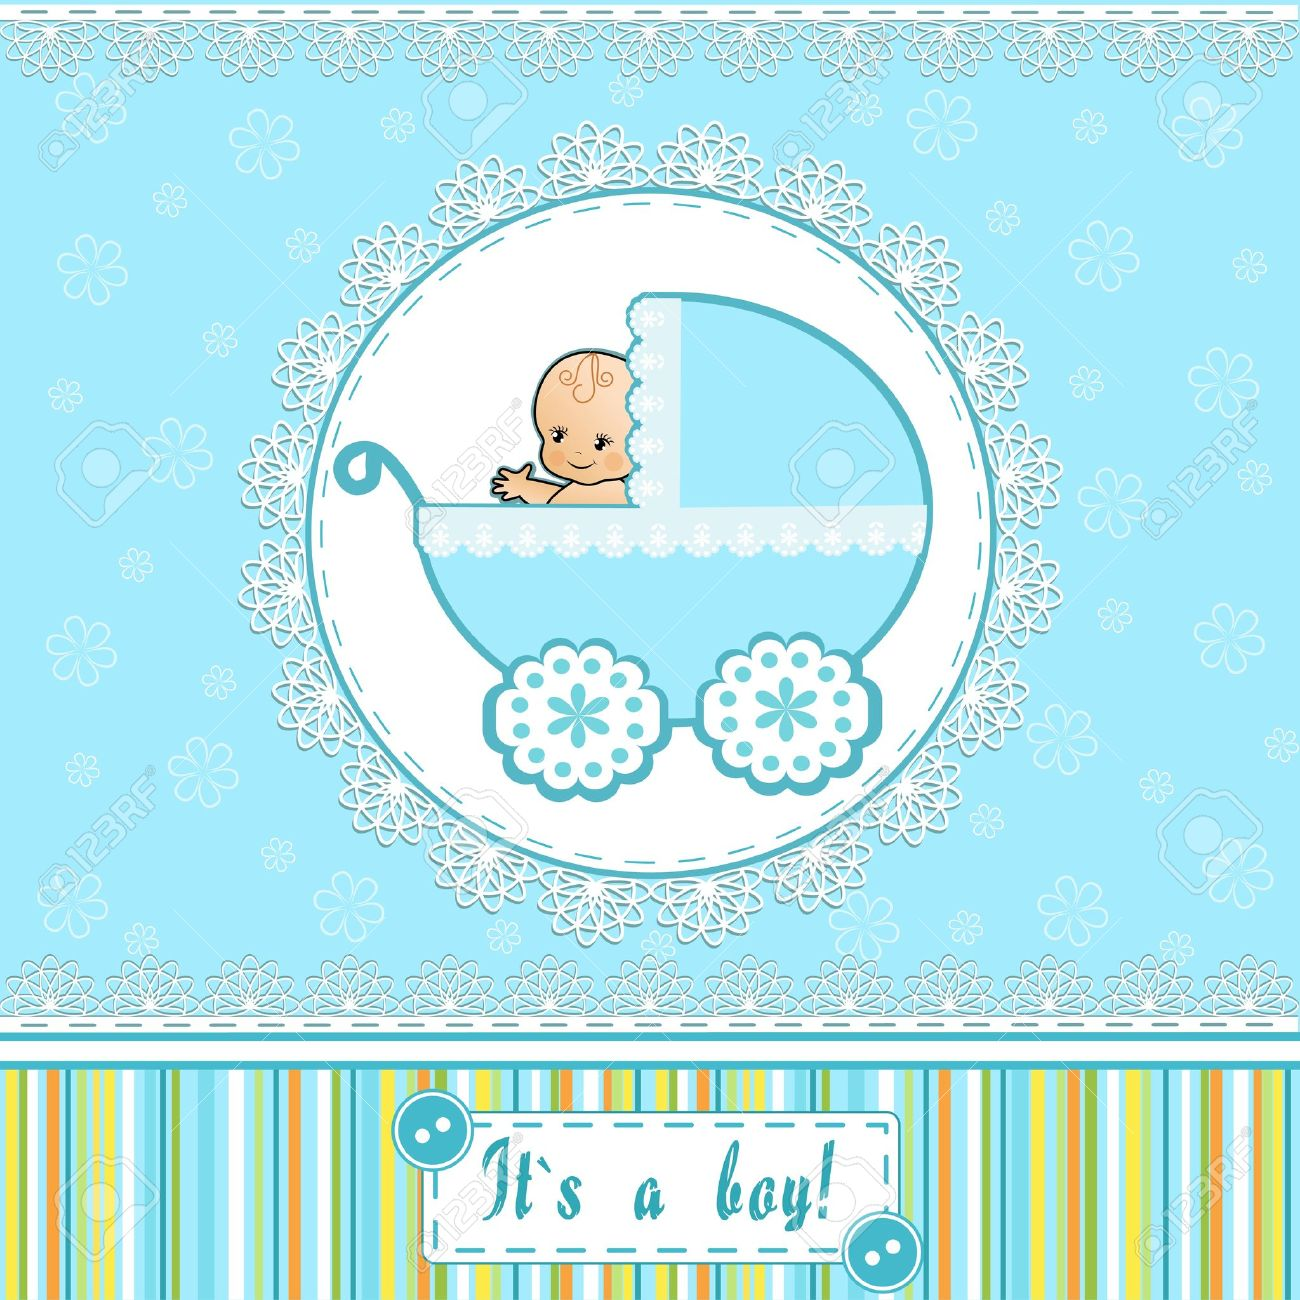 Garage Baby Shower Card Vector Illustration Baby Shower Card Vector Illustration Royalty Free Vectors Baby Shower Cards Twins Baby Shower Cards Printable Free baby shower Baby Shower Cards